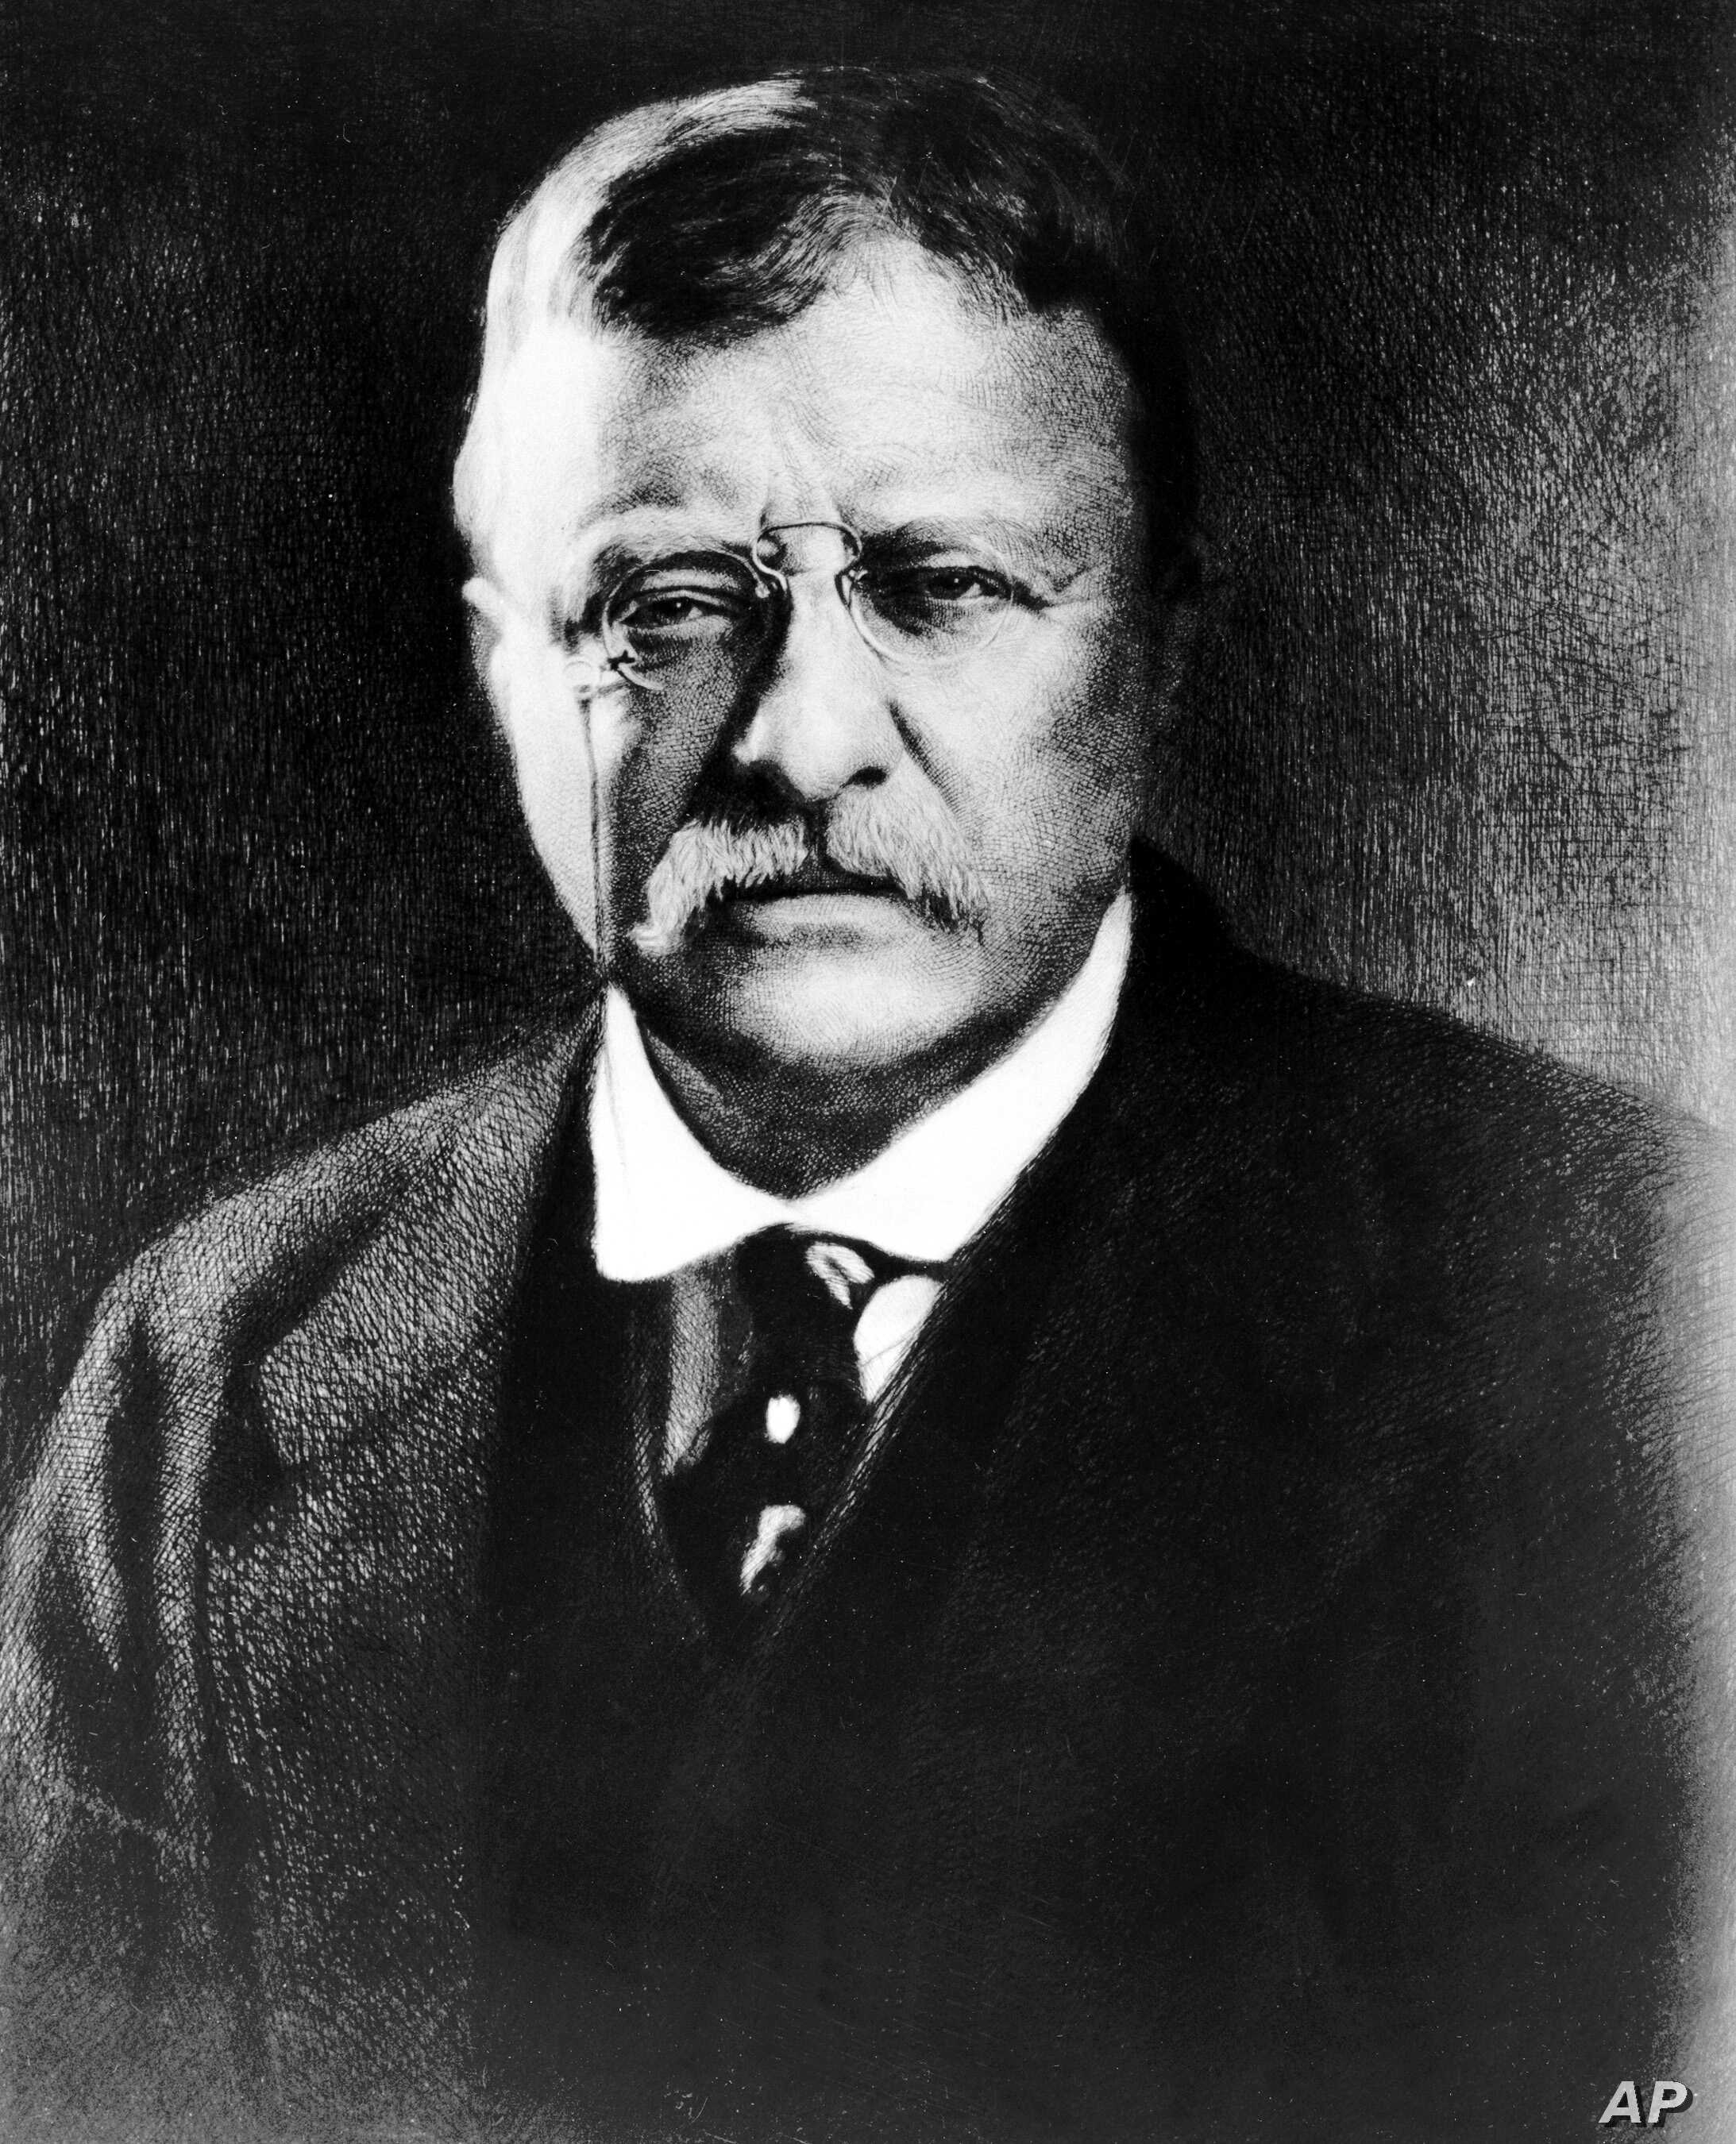 """Theodore Roosevelt, the 26th U.S. president, seen in this undated picture, """"could be blind to his own contradictions. But it was couched in a warm, almost ebullient style,"""" says historian David Greenberg of Rutgers University."""